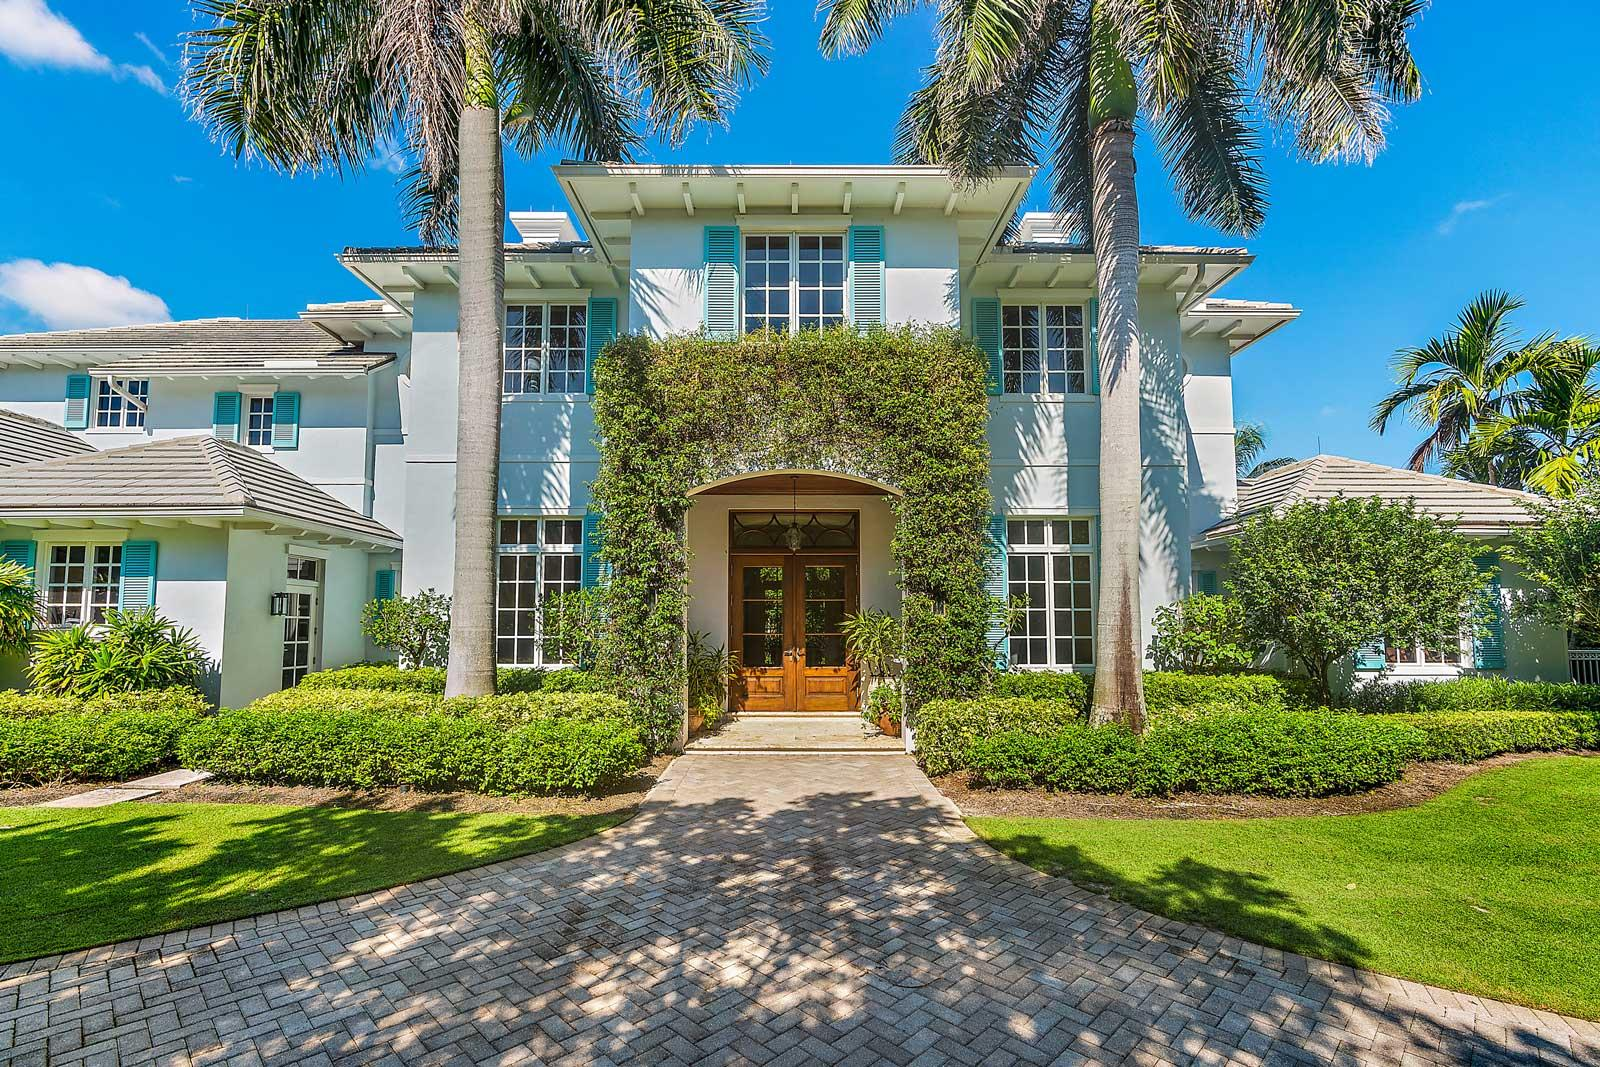 12175 Banyan Road, North Palm Beach, Florida 33408, 5 Bedrooms Bedrooms, ,4.1 BathroomsBathrooms,A,Single family,Banyan,RX-10557374